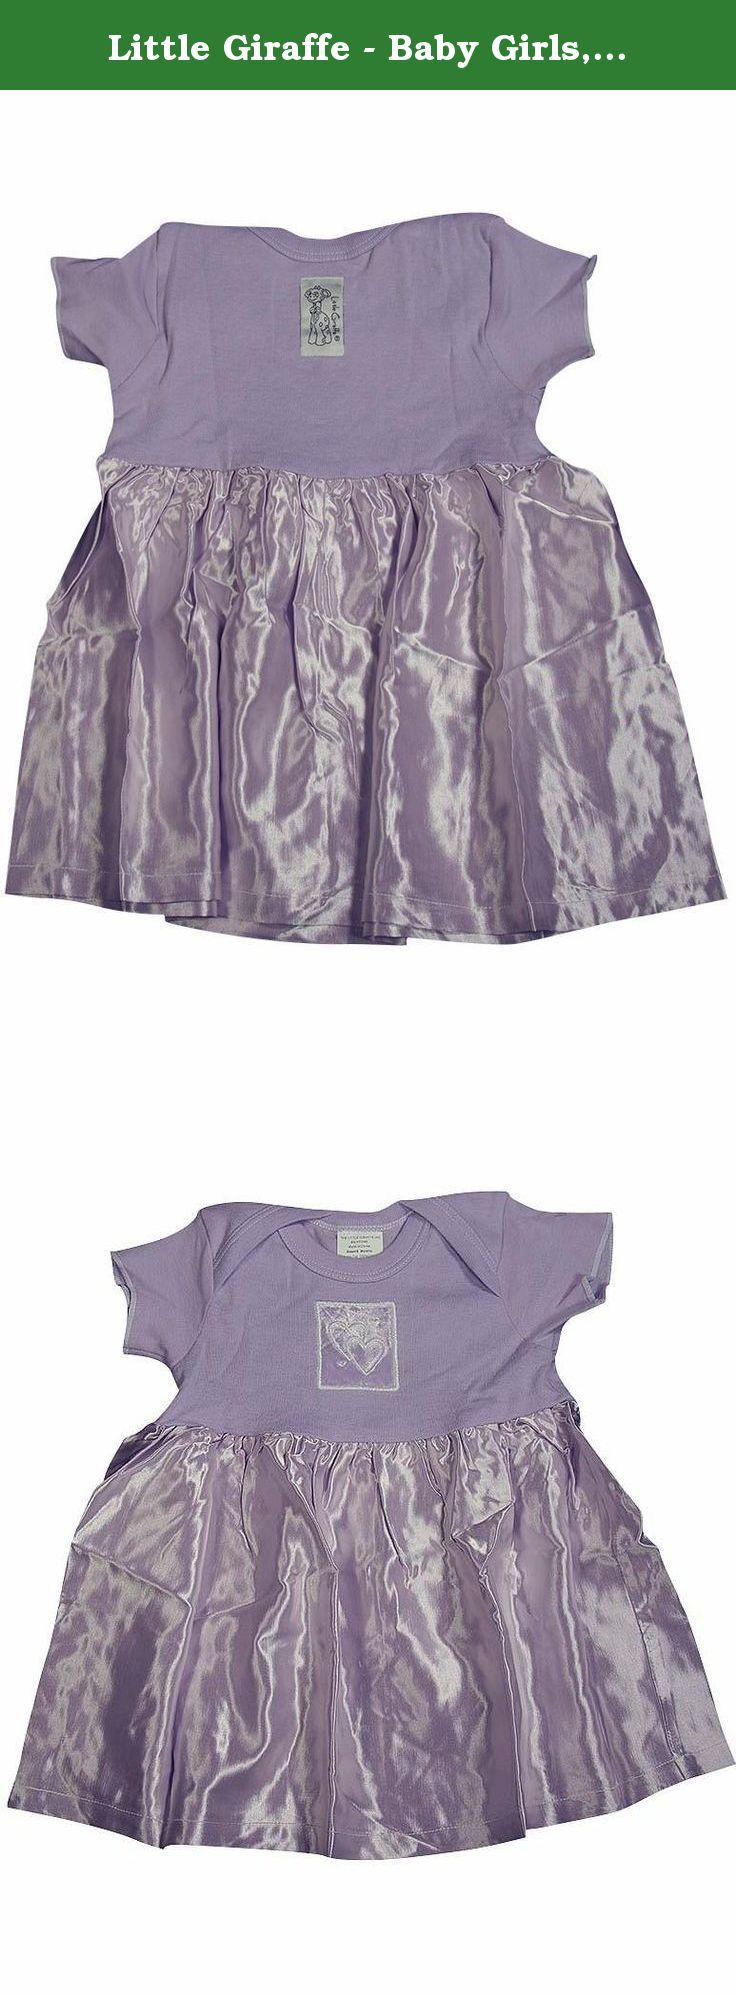 Little Giraffe - Baby Girls, Short Sleeved Dress, Lilac 4052-6Months. Little Giraffe - Newborn Baby Girls, Short Sleeved Dress, Lilac with Hearts Embroidered Velvet Patch, and Satin Skirt, Jersey Top 100% Cotton, Satin Skirt 52% Acetate, 48% Rayon, Made In China, #4052.